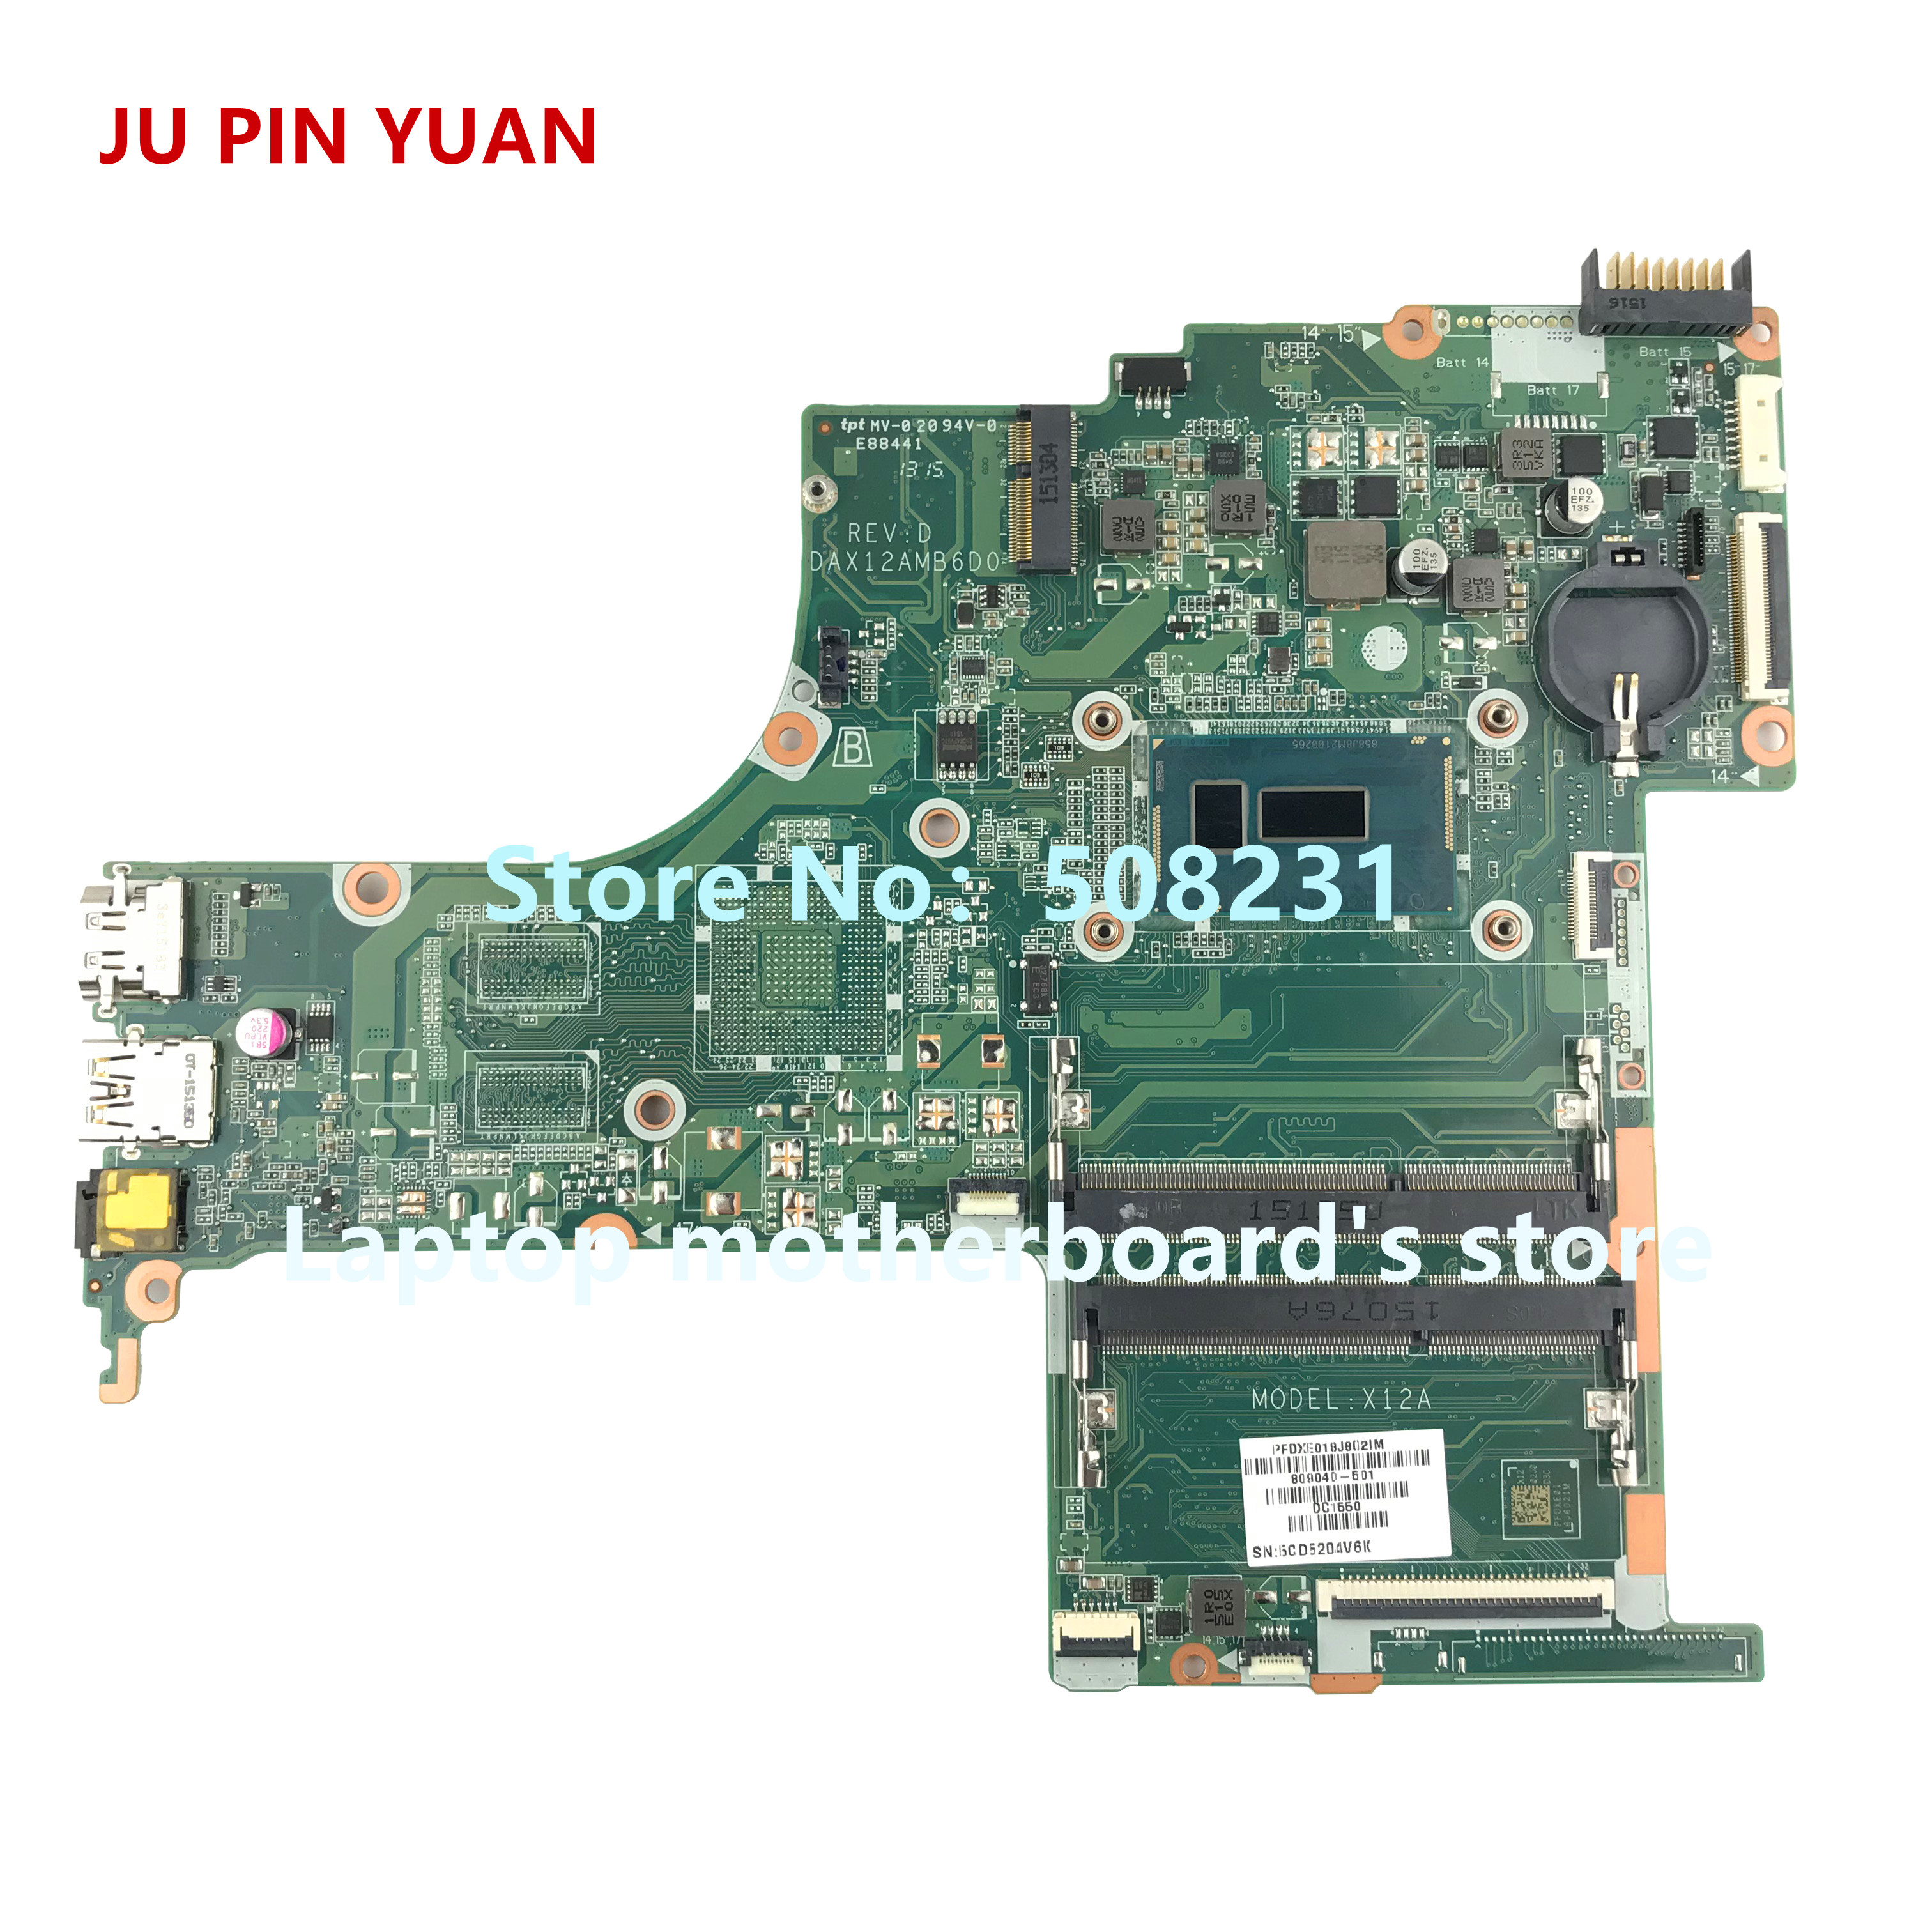 JU PIN YUAN 809040-501 X12A DAX12AMB6D0 for HP Pavilion Notebook 15-AB 15T-AB 15-ab040sa laptop motherboard  with i3-5010UJU PIN YUAN 809040-501 X12A DAX12AMB6D0 for HP Pavilion Notebook 15-AB 15T-AB 15-ab040sa laptop motherboard  with i3-5010U